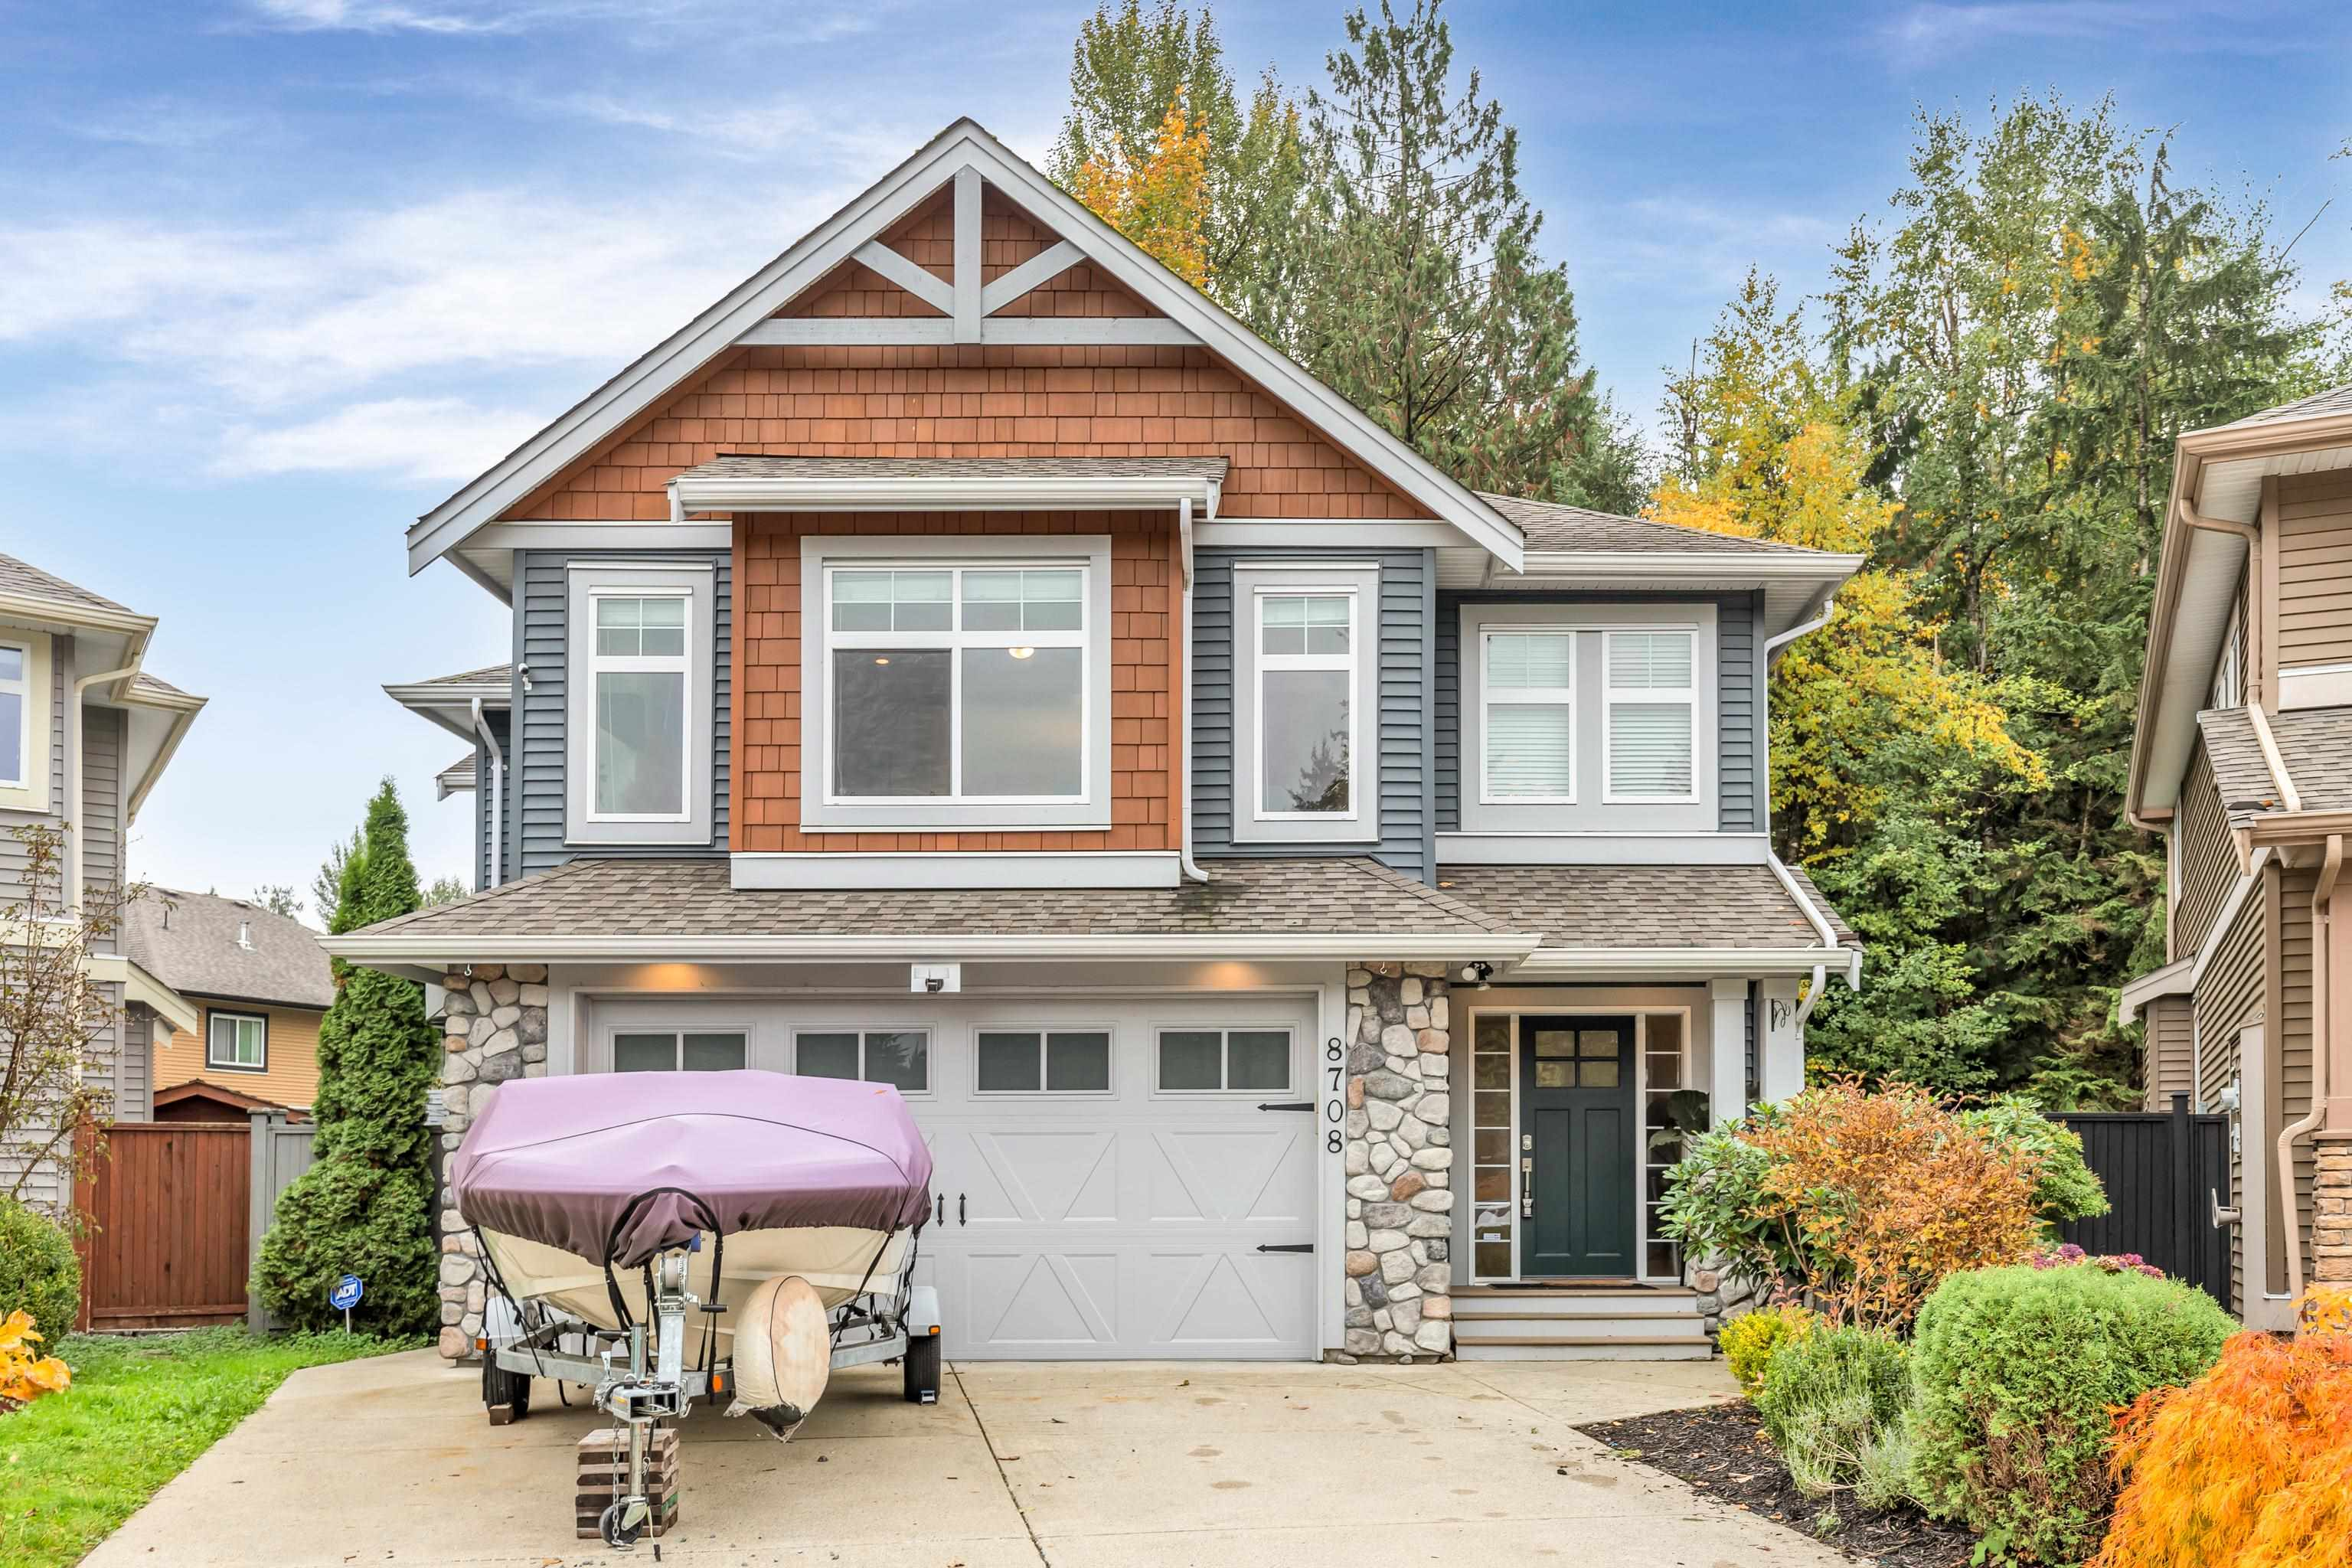 8708 PARKER COURT - Mission BC House/Single Family for sale, 5 Bedrooms (R2627378) - #1